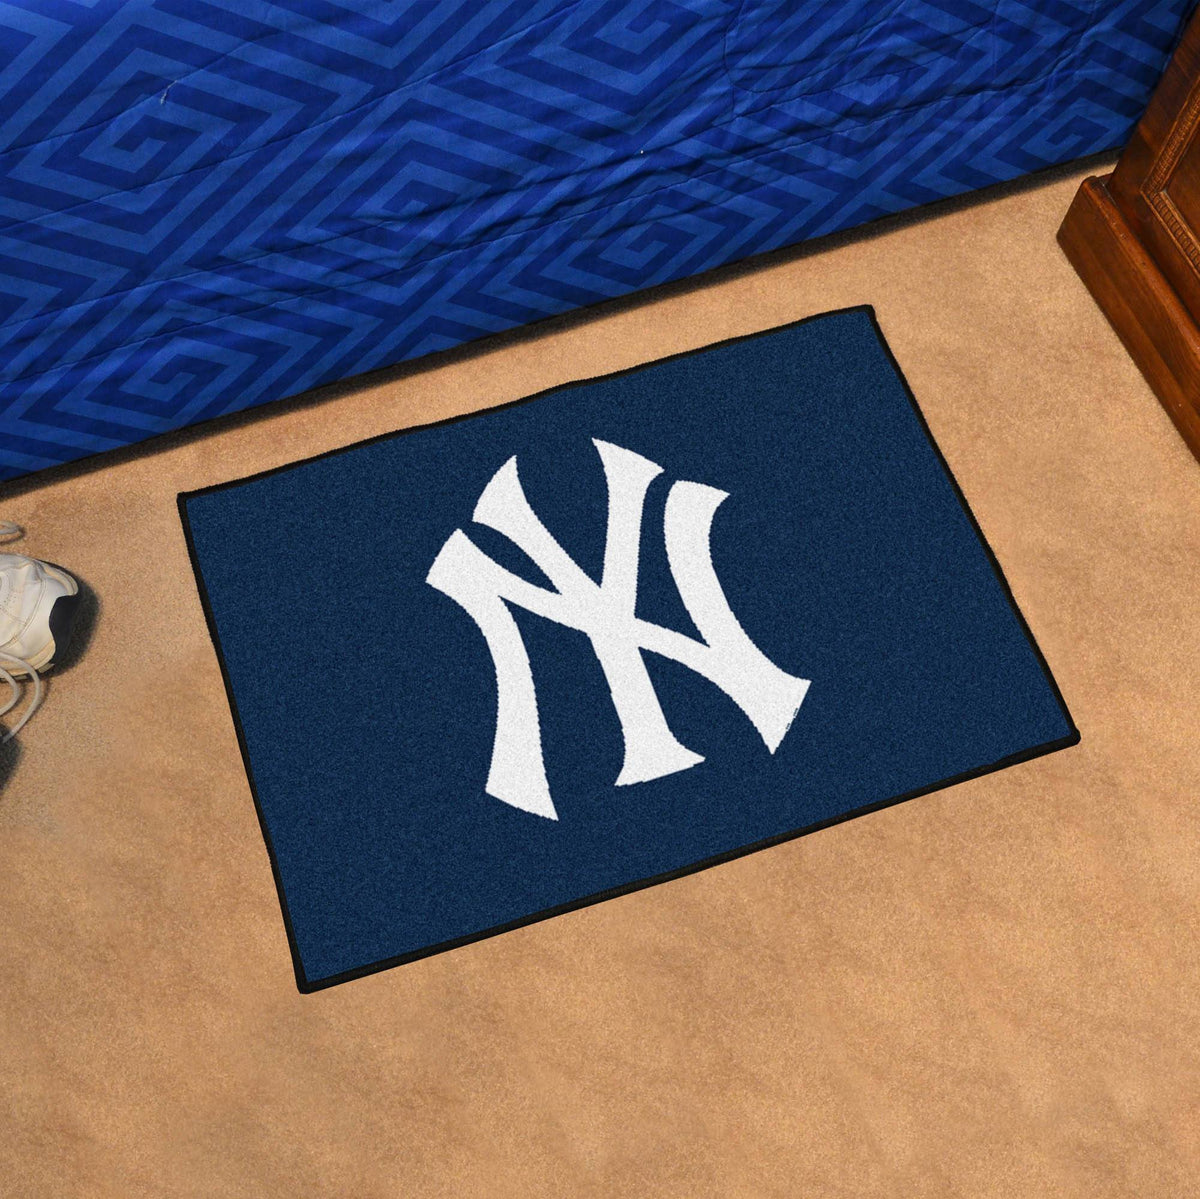 MLB - Starter Mat MLB Mats, Rectangular Mats, Starter Mat, MLB, Home Fan Mats New York Yankees